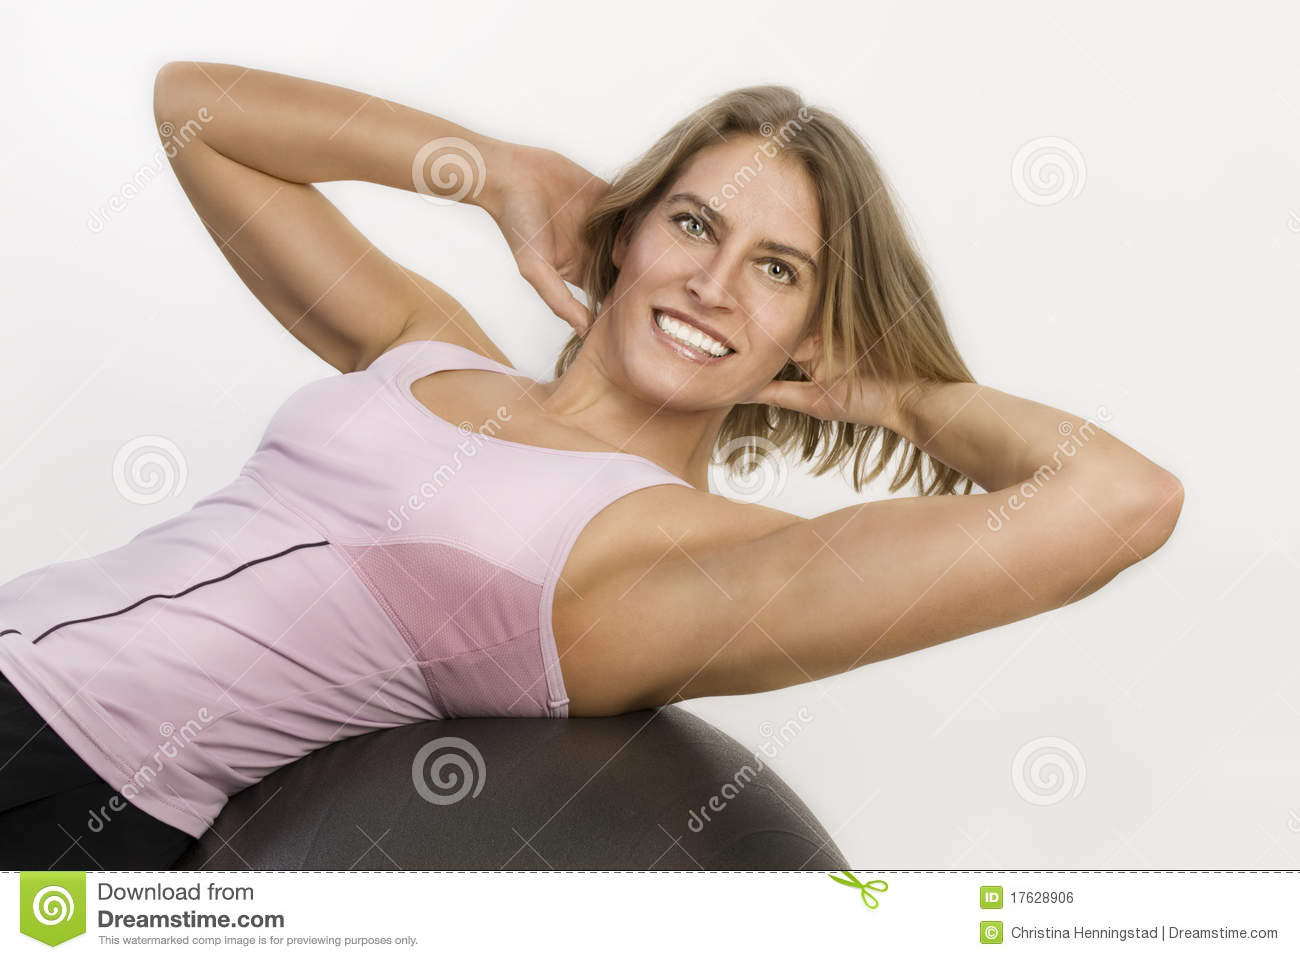 Woman working out with a gym ball